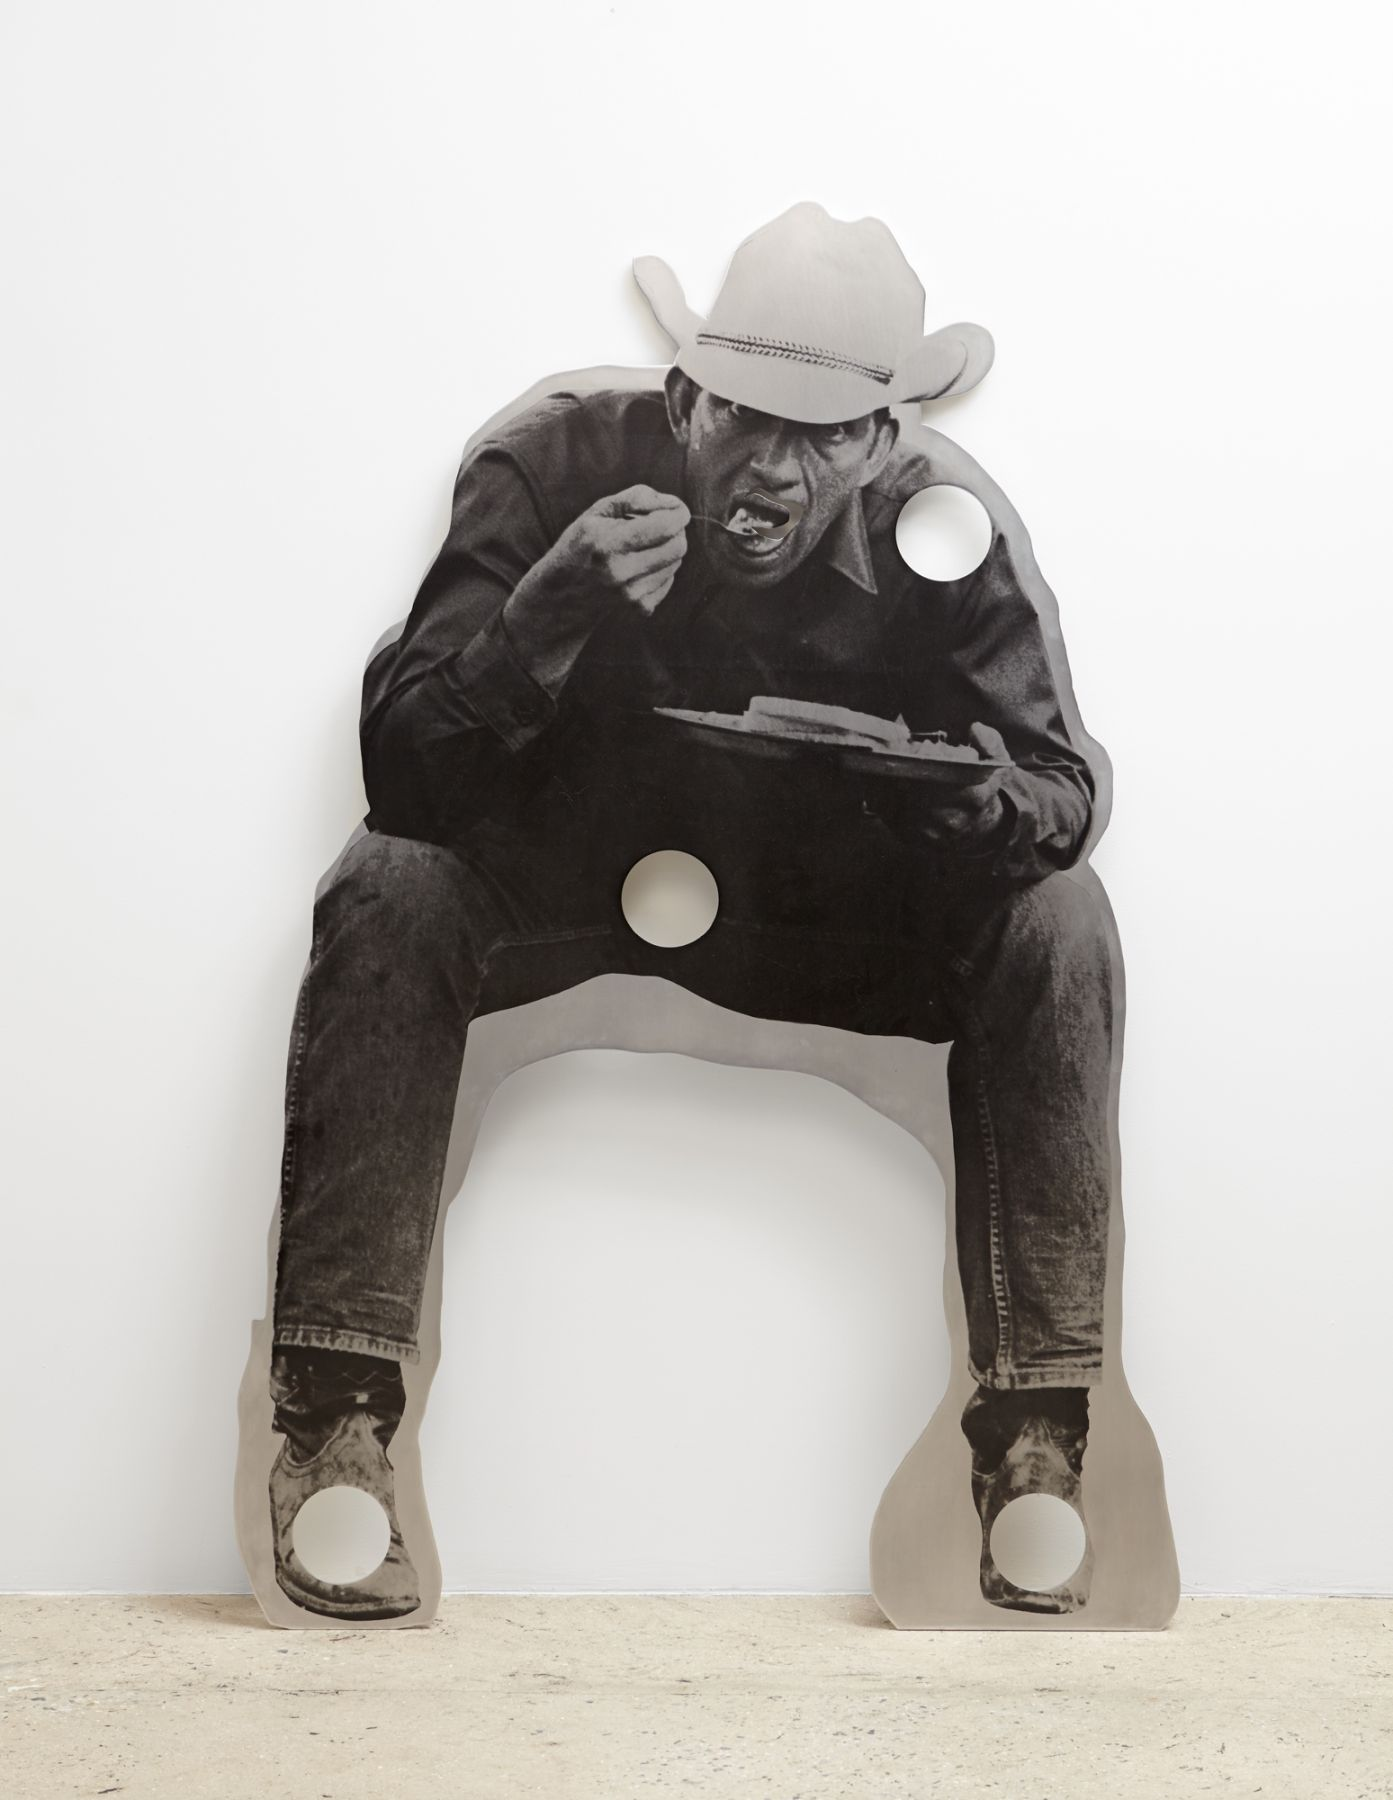 Cady Noland Cowboy with Holes, Eating